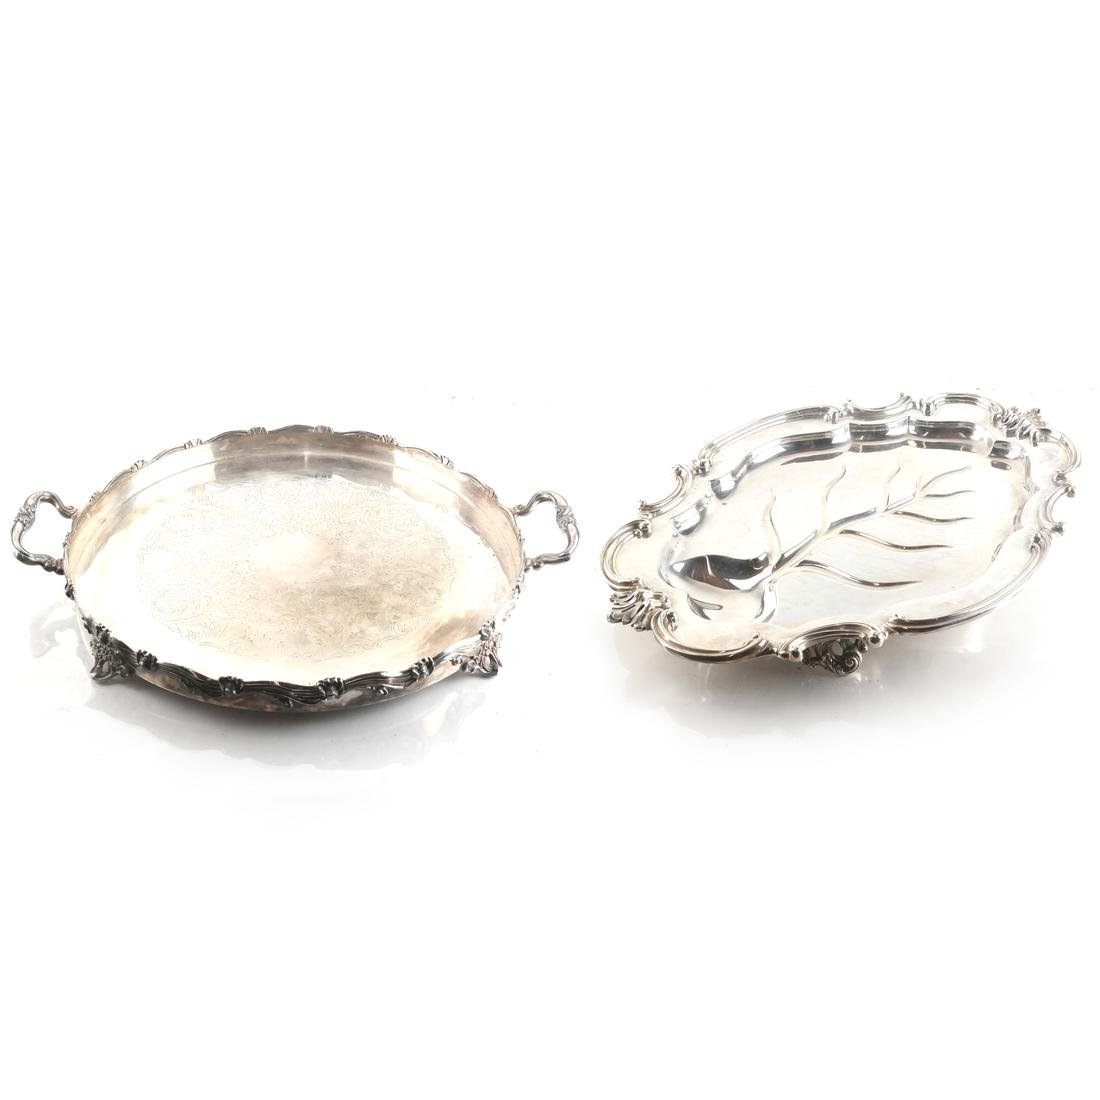 Two Silver-Plated Footed Trays